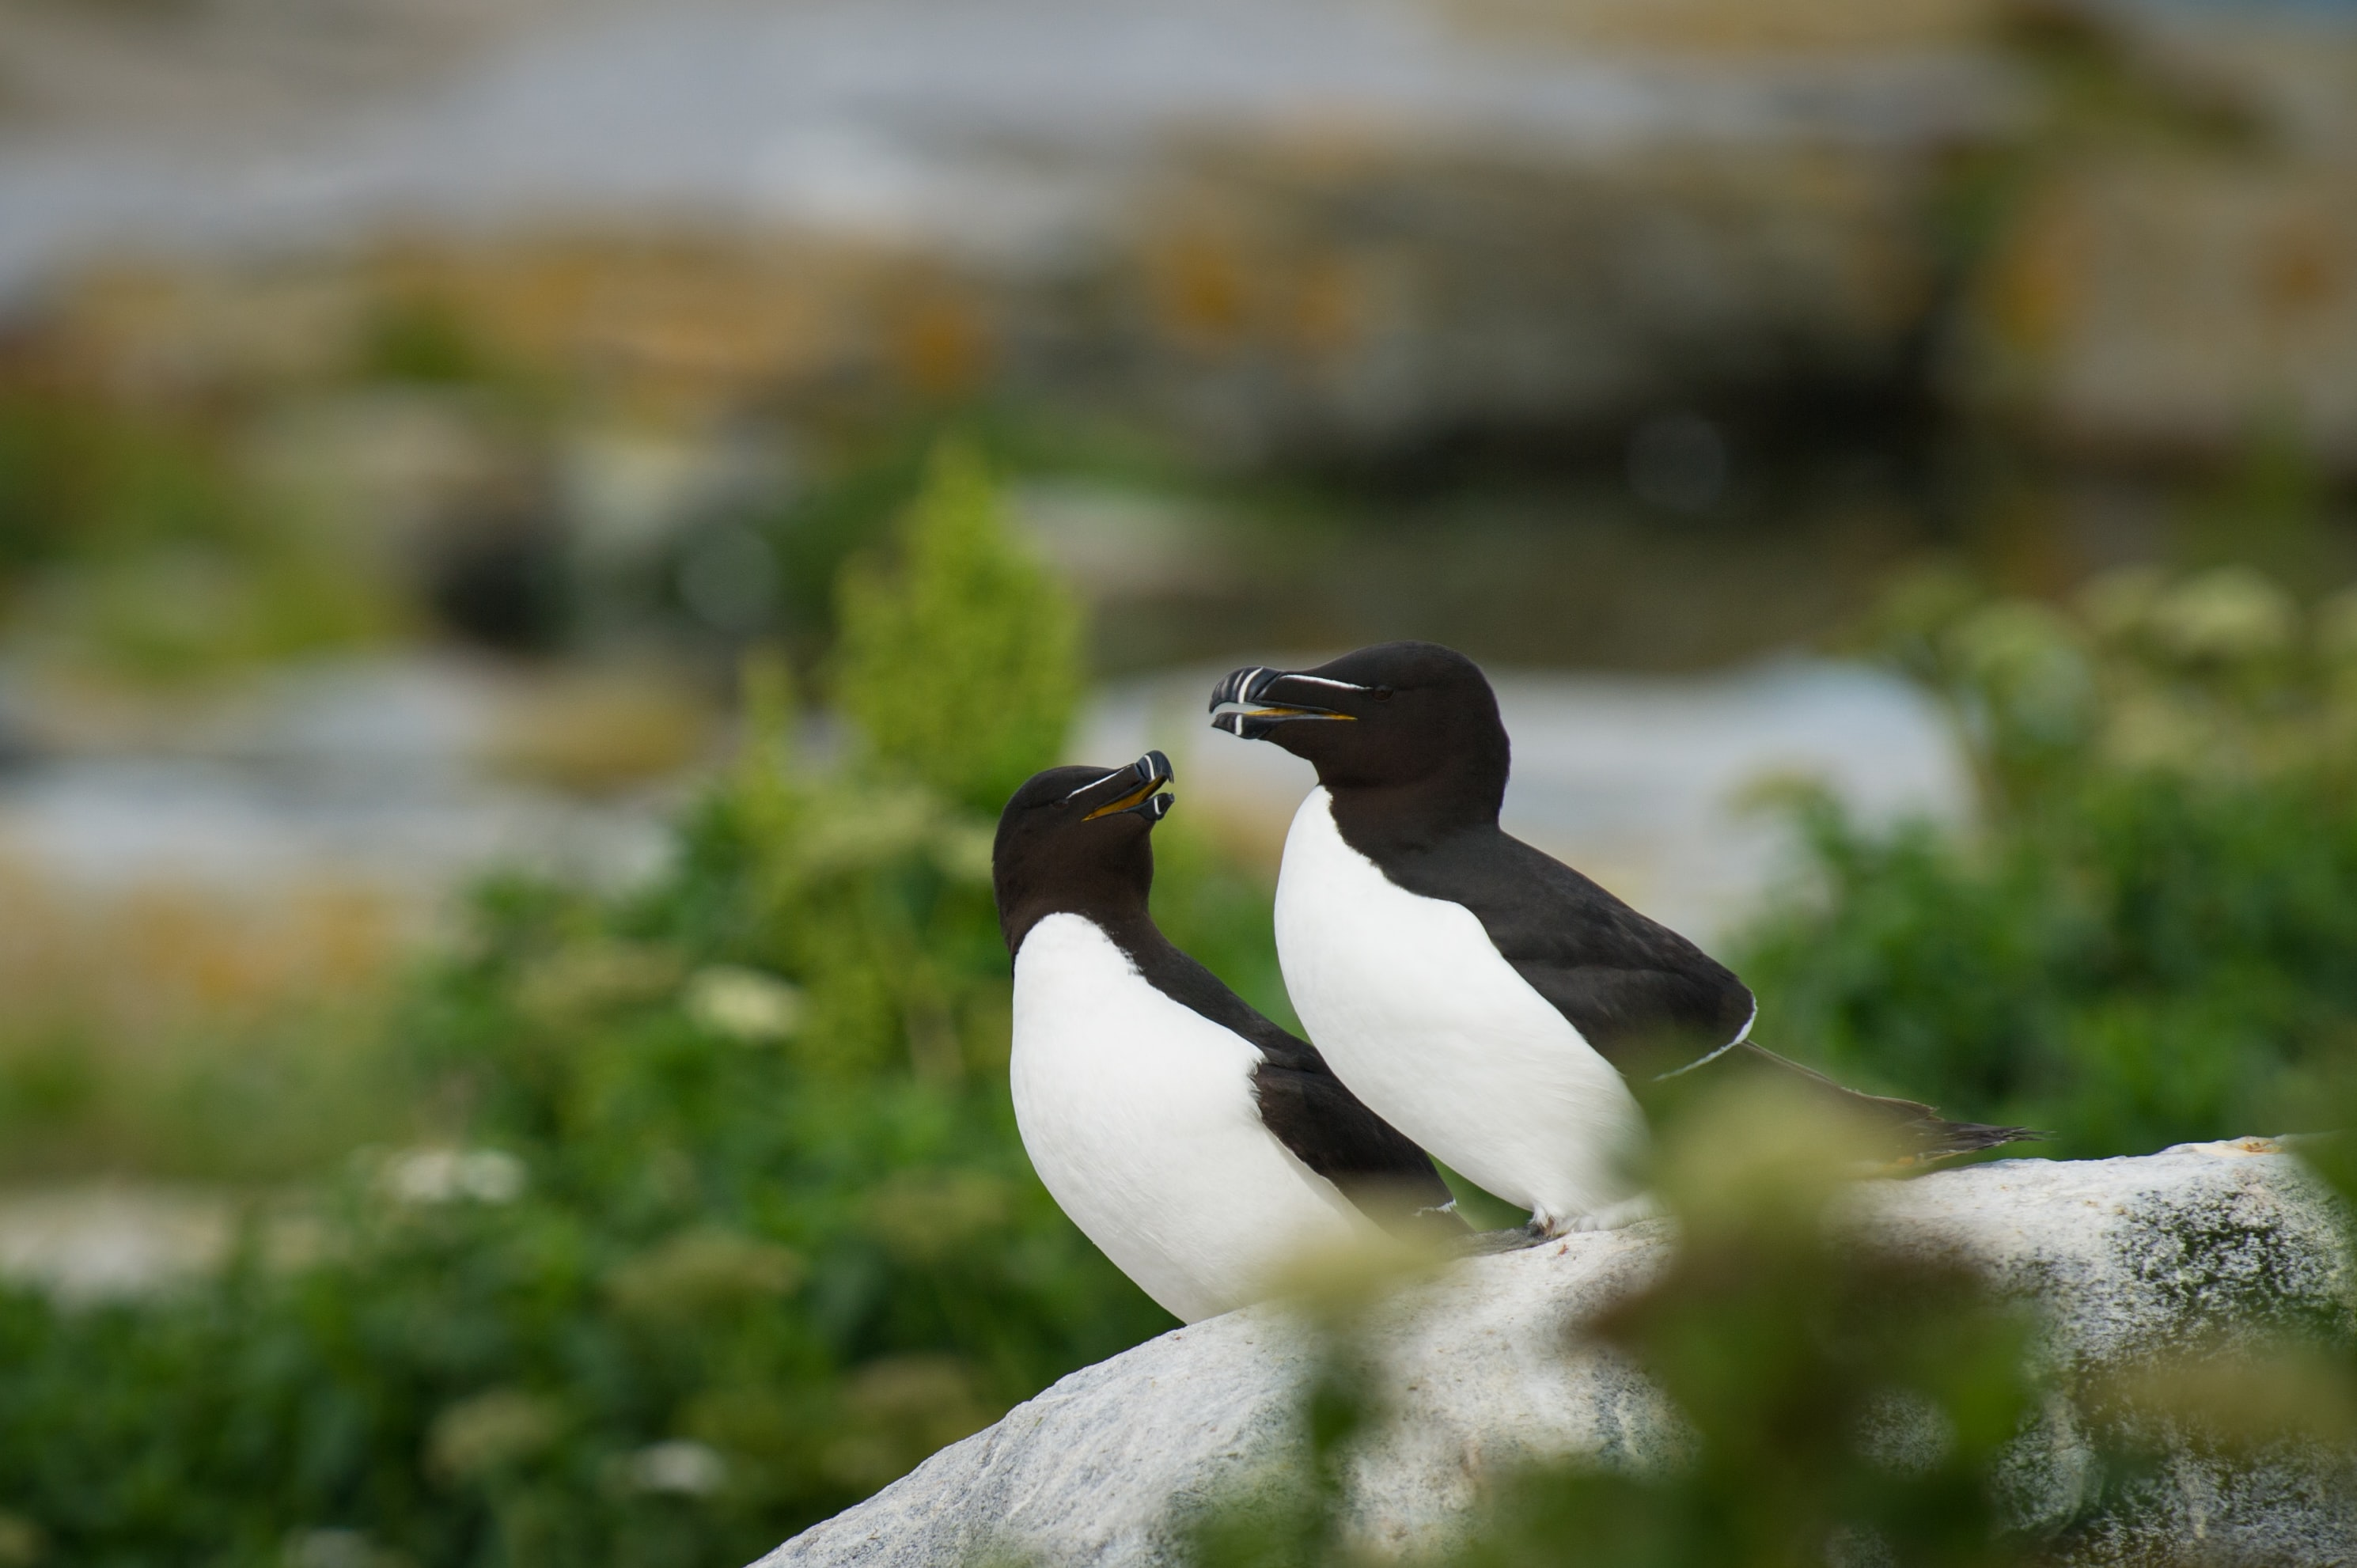 two white-and-black birds standing on grey stone